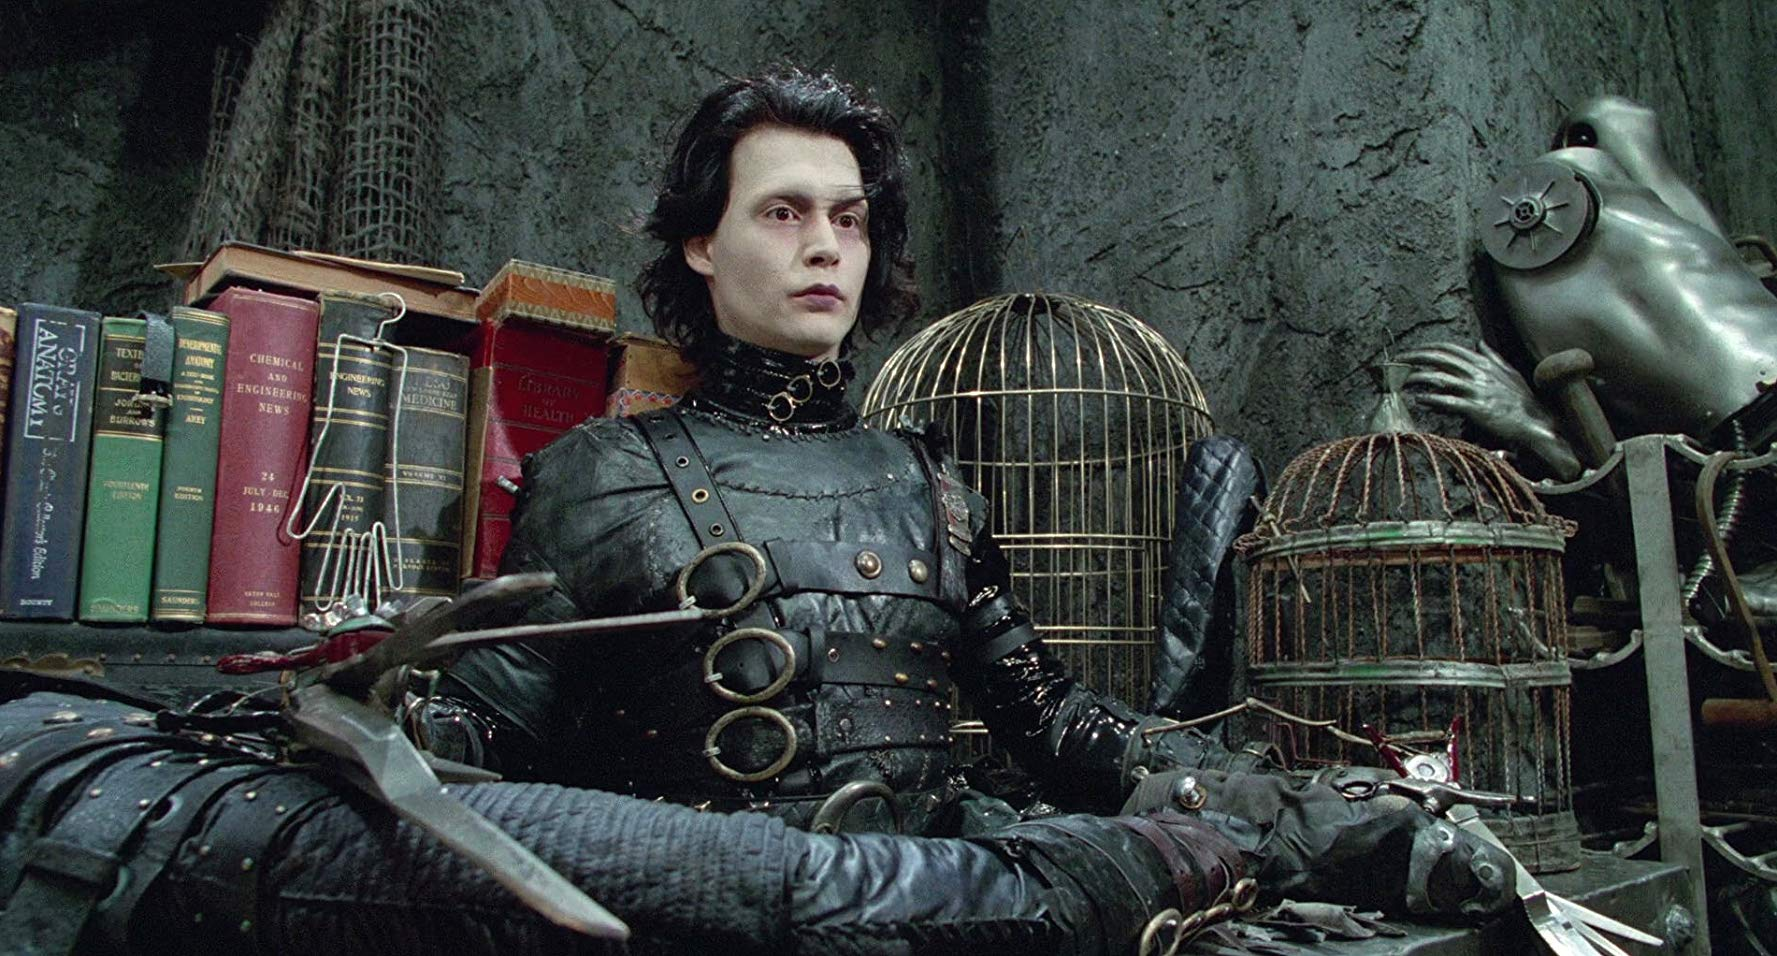 edward scissorhands, tim burton, johnny depp